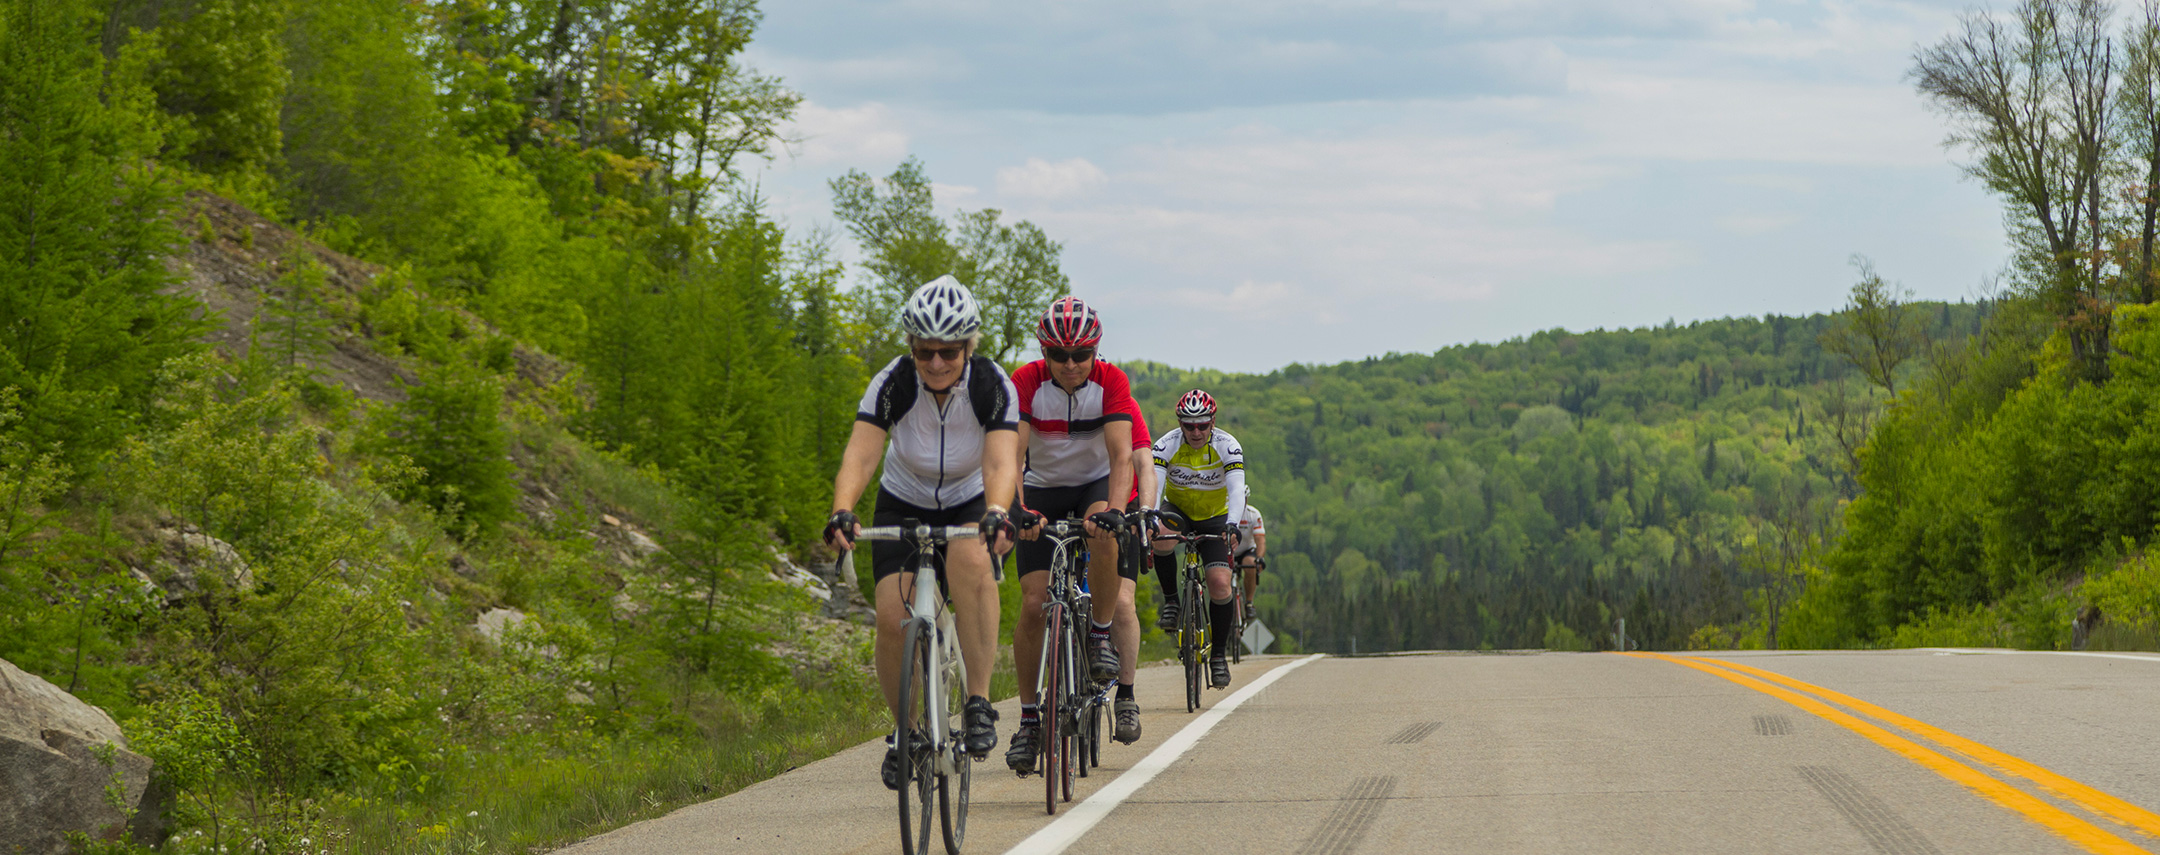 Cycling in Saint-Donat